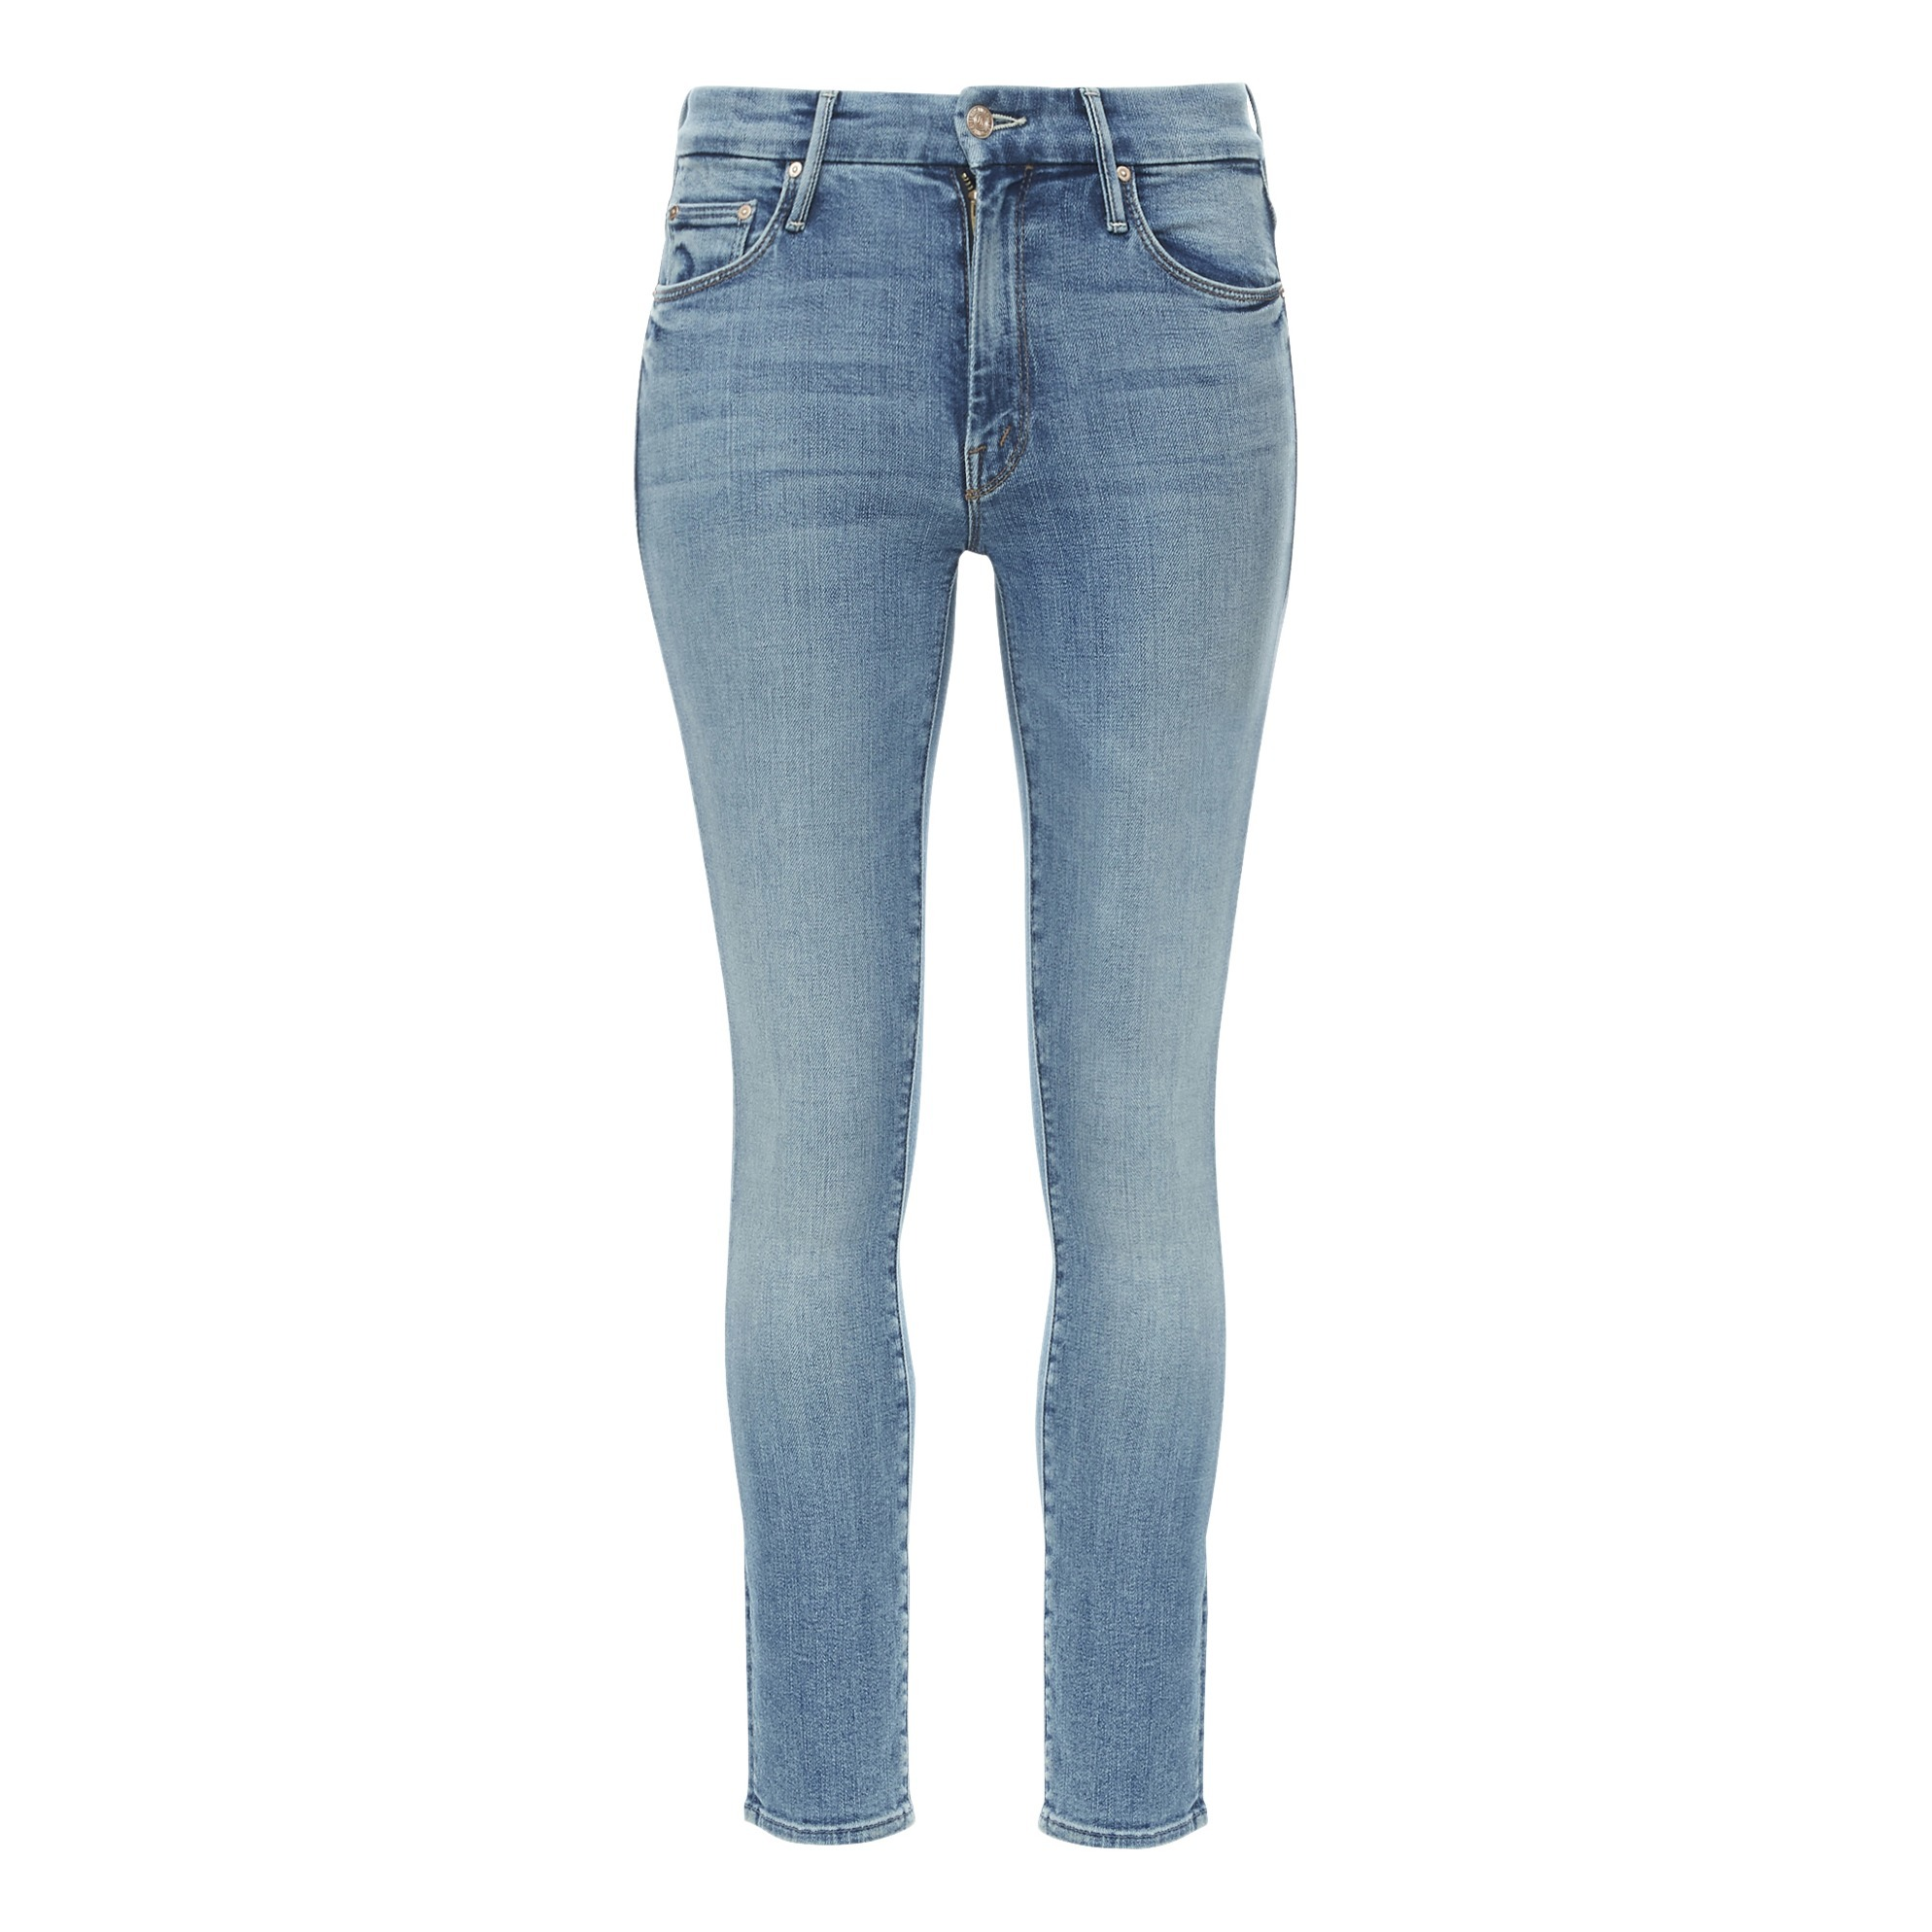 Jeans Looker Cropped Skinny Hit, Empfehlung 3457